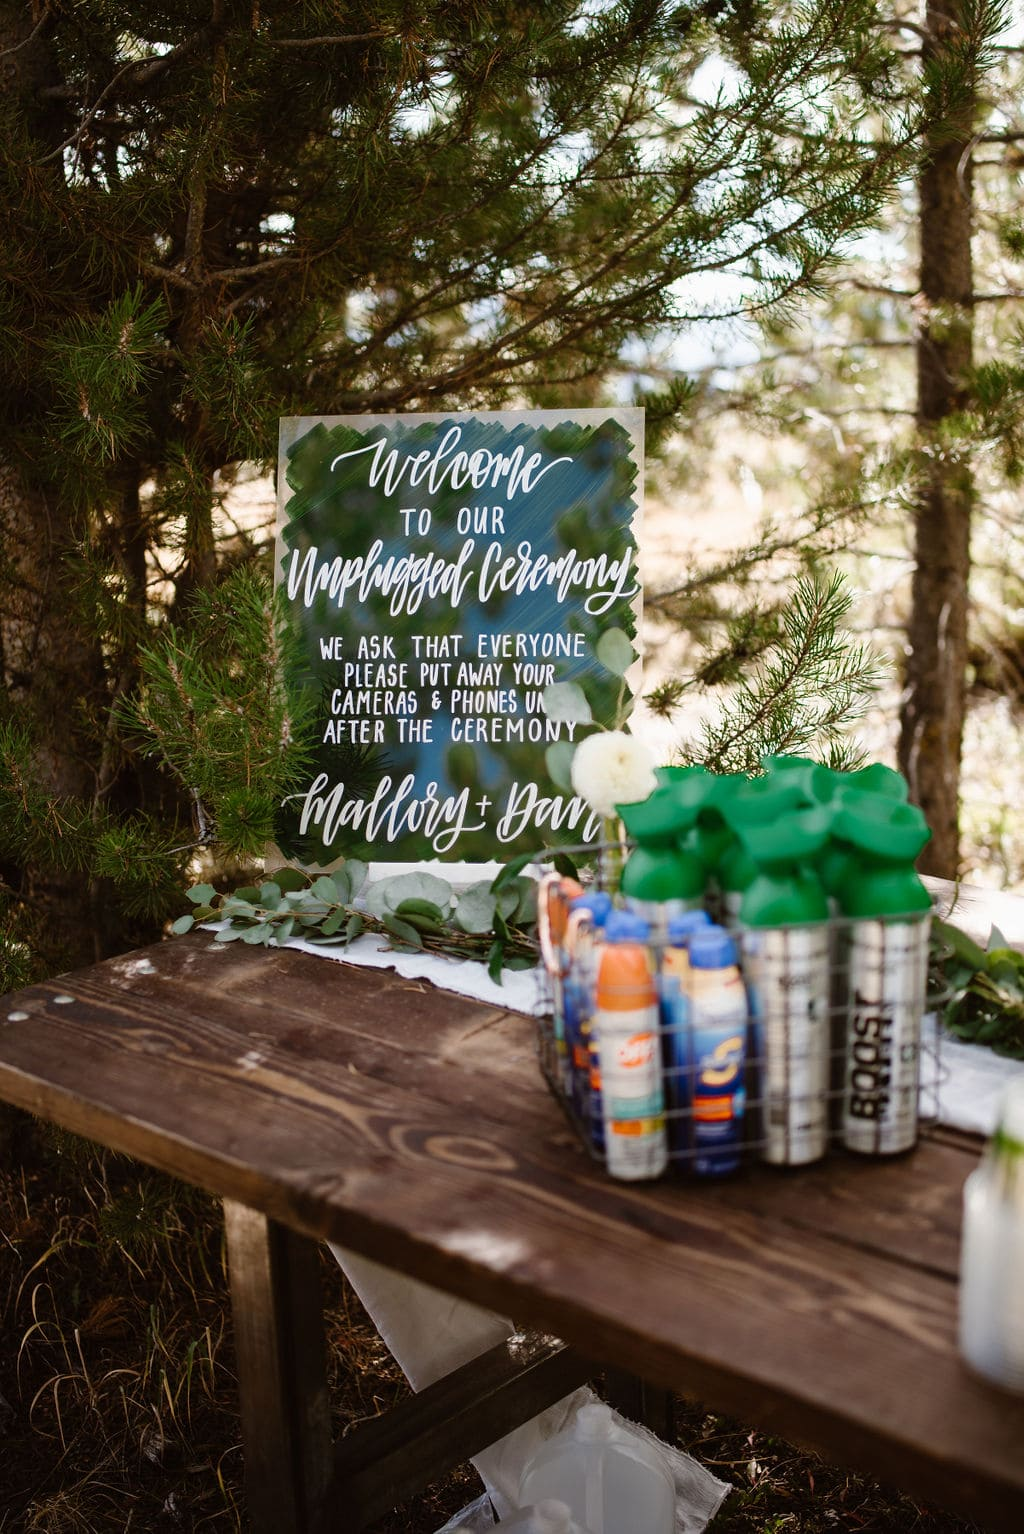 Colorado Wedding Ceremony Items that include canned oxygen and sunscreen